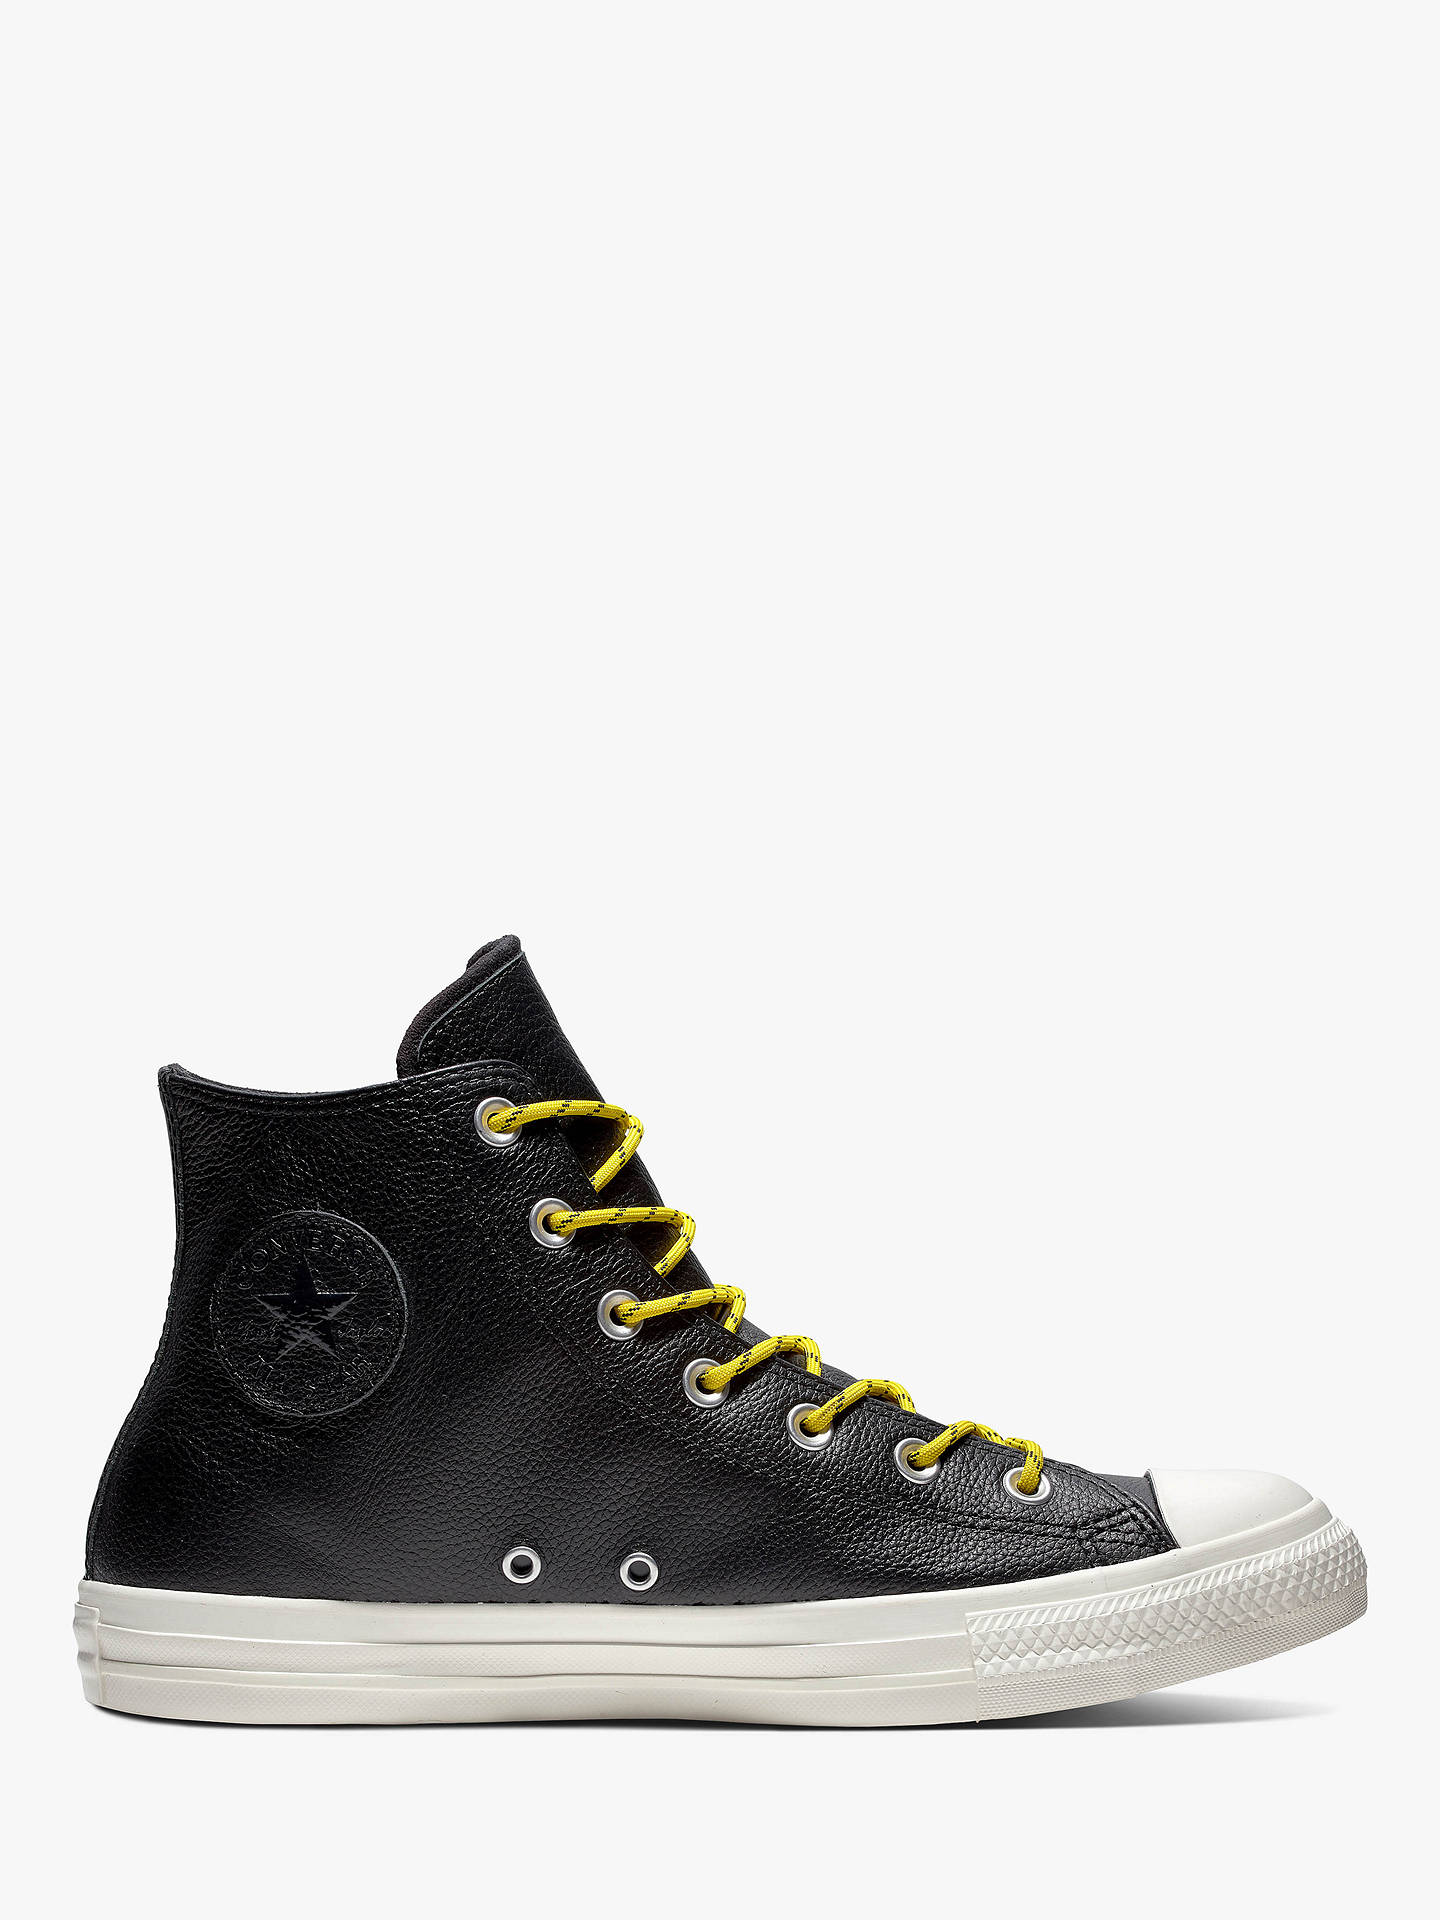 91b615b6f293 Converse Chuck Taylor Leather Hi-Top Leather Trainers at John Lewis ...